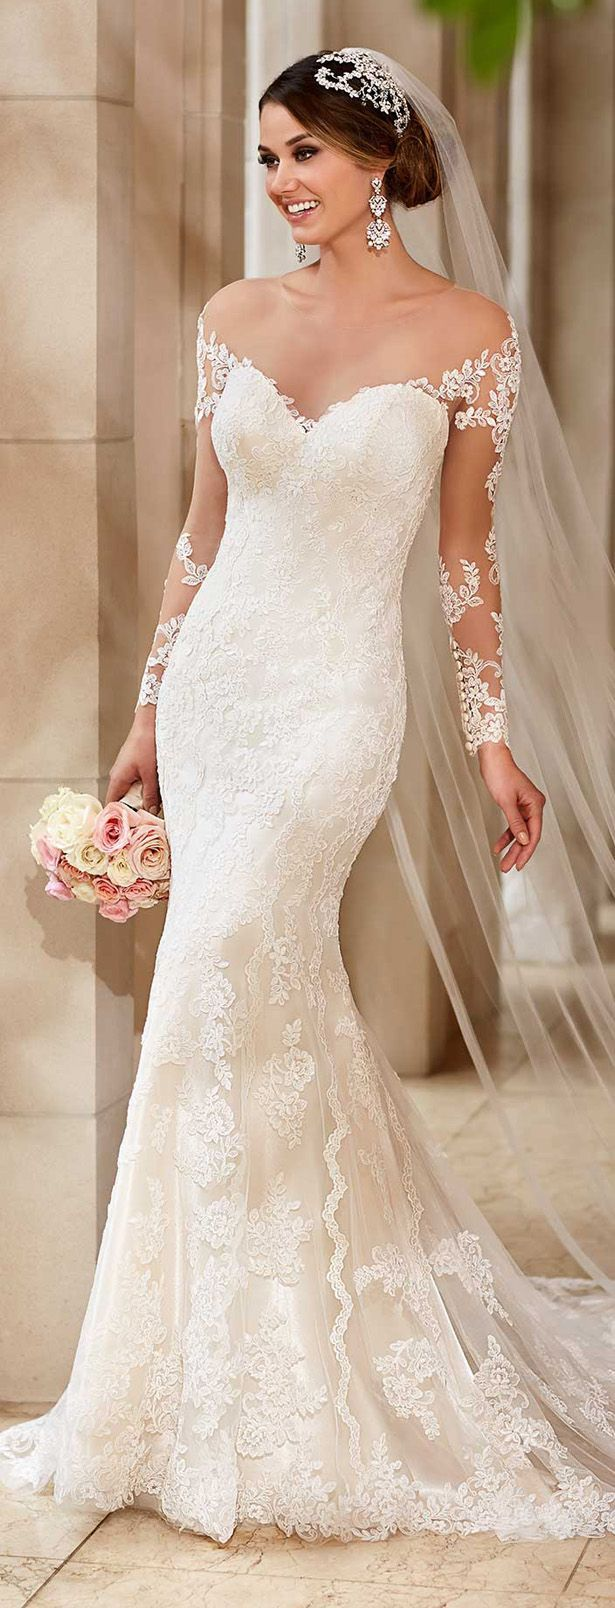 chic long sleeve wedding dresses new stella york